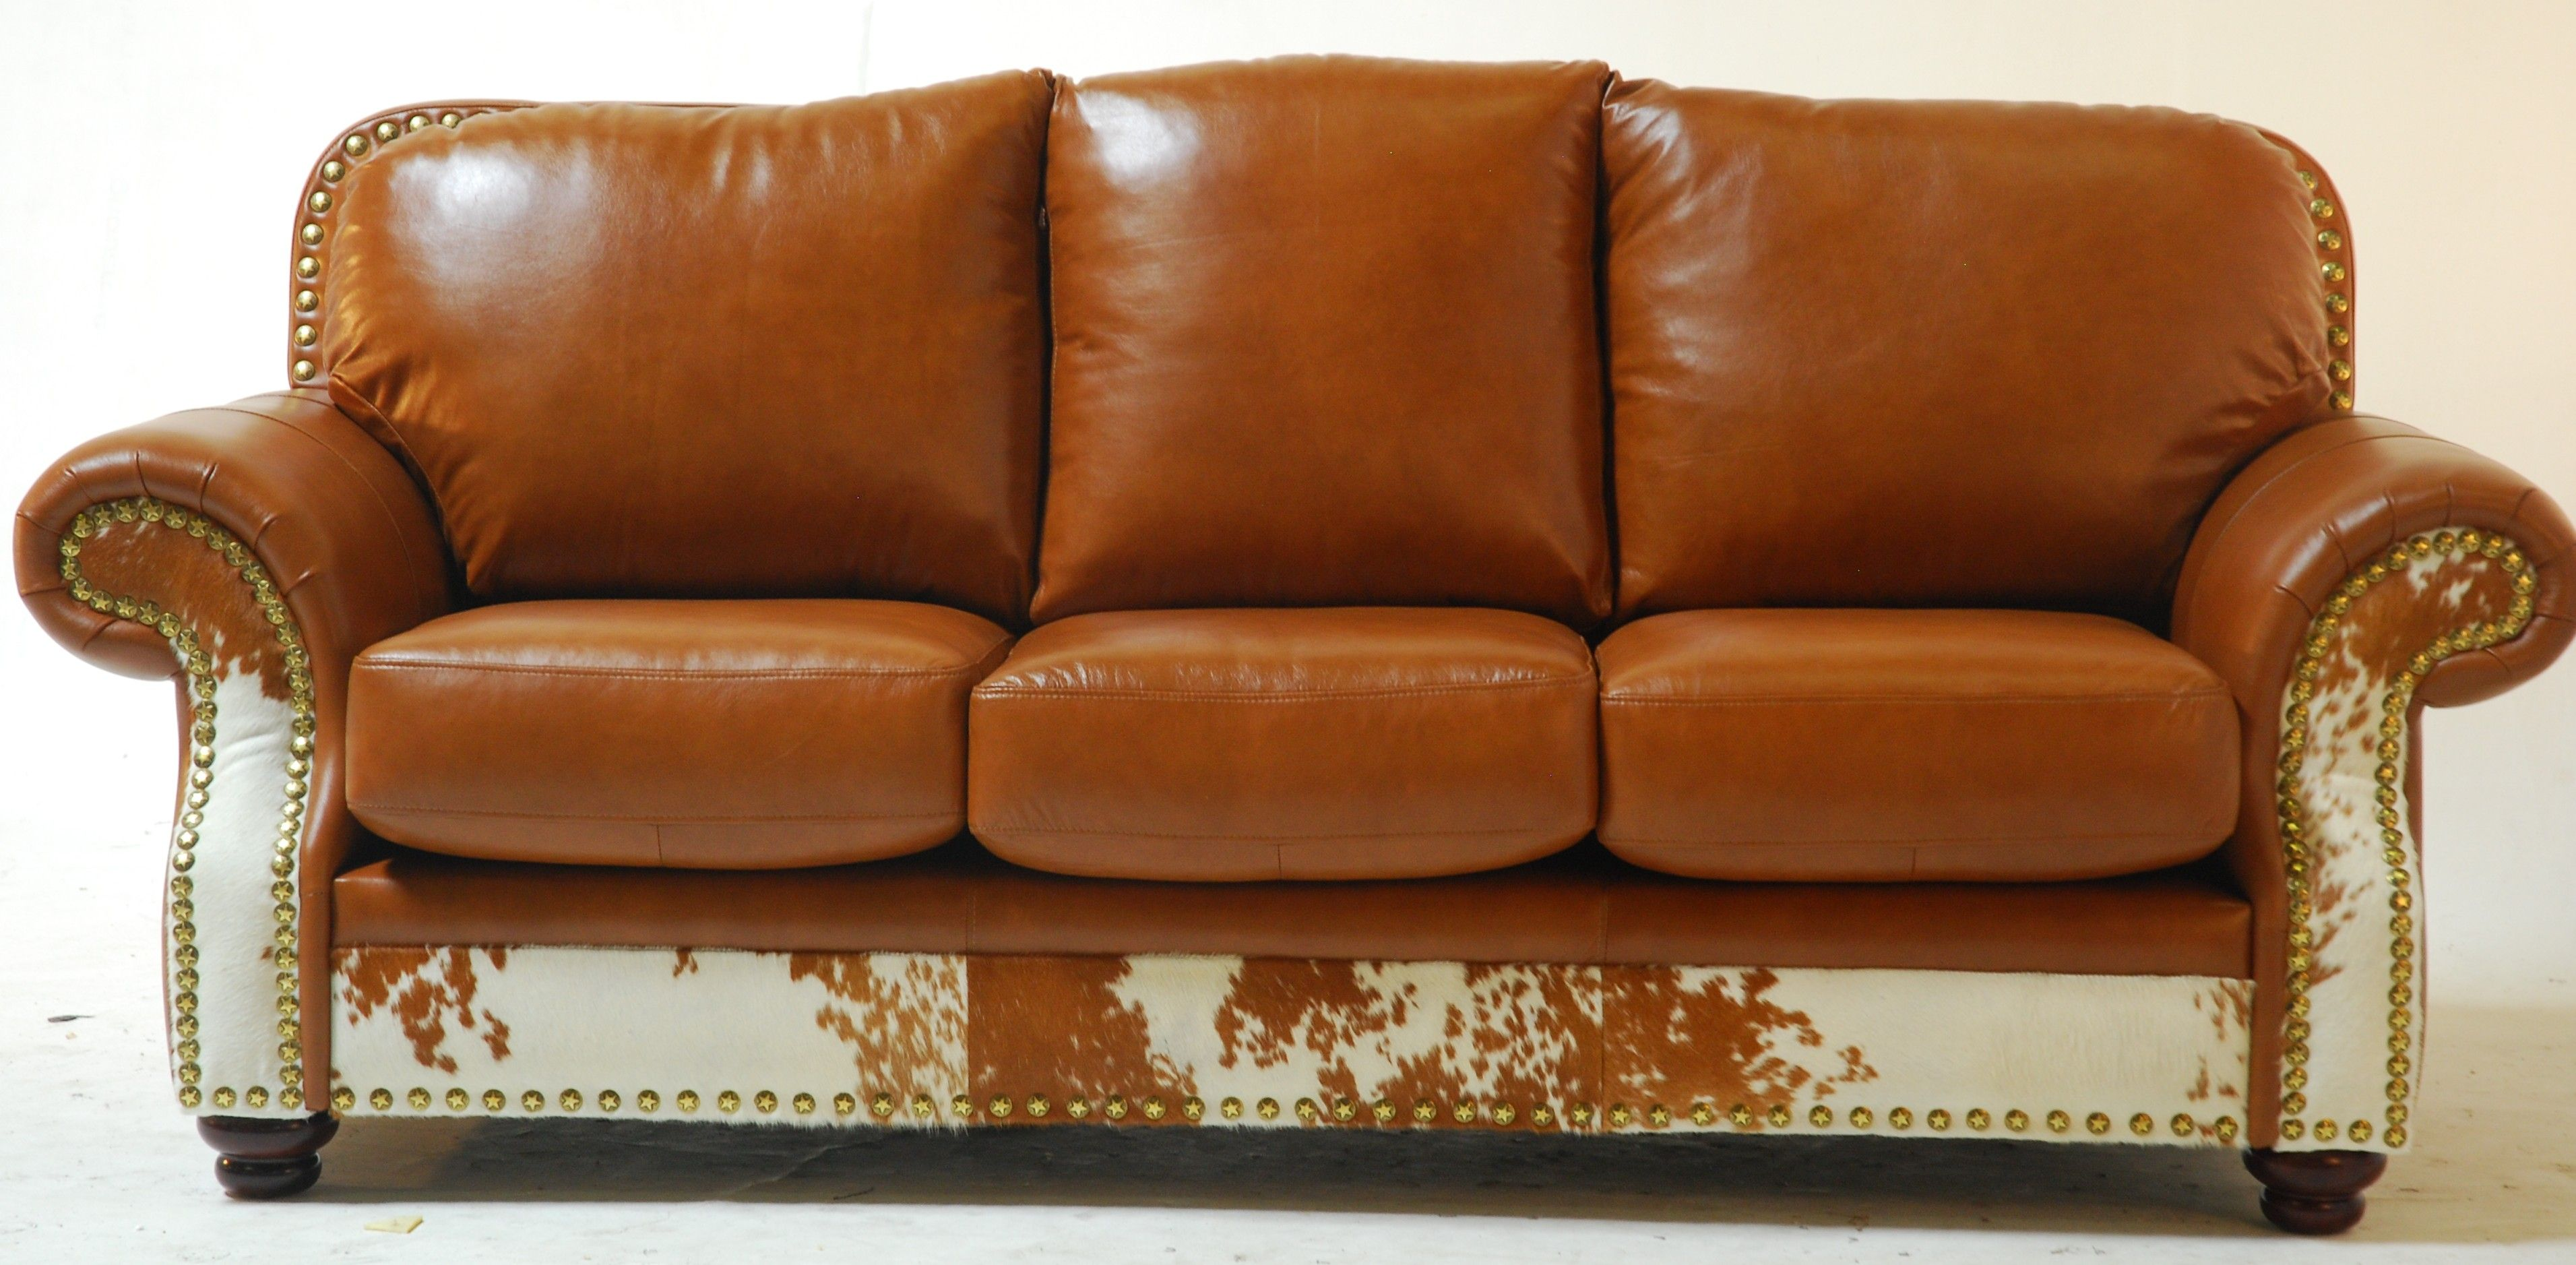 Cowskin Leather Couch From Slick Rock Designs Orange Leather